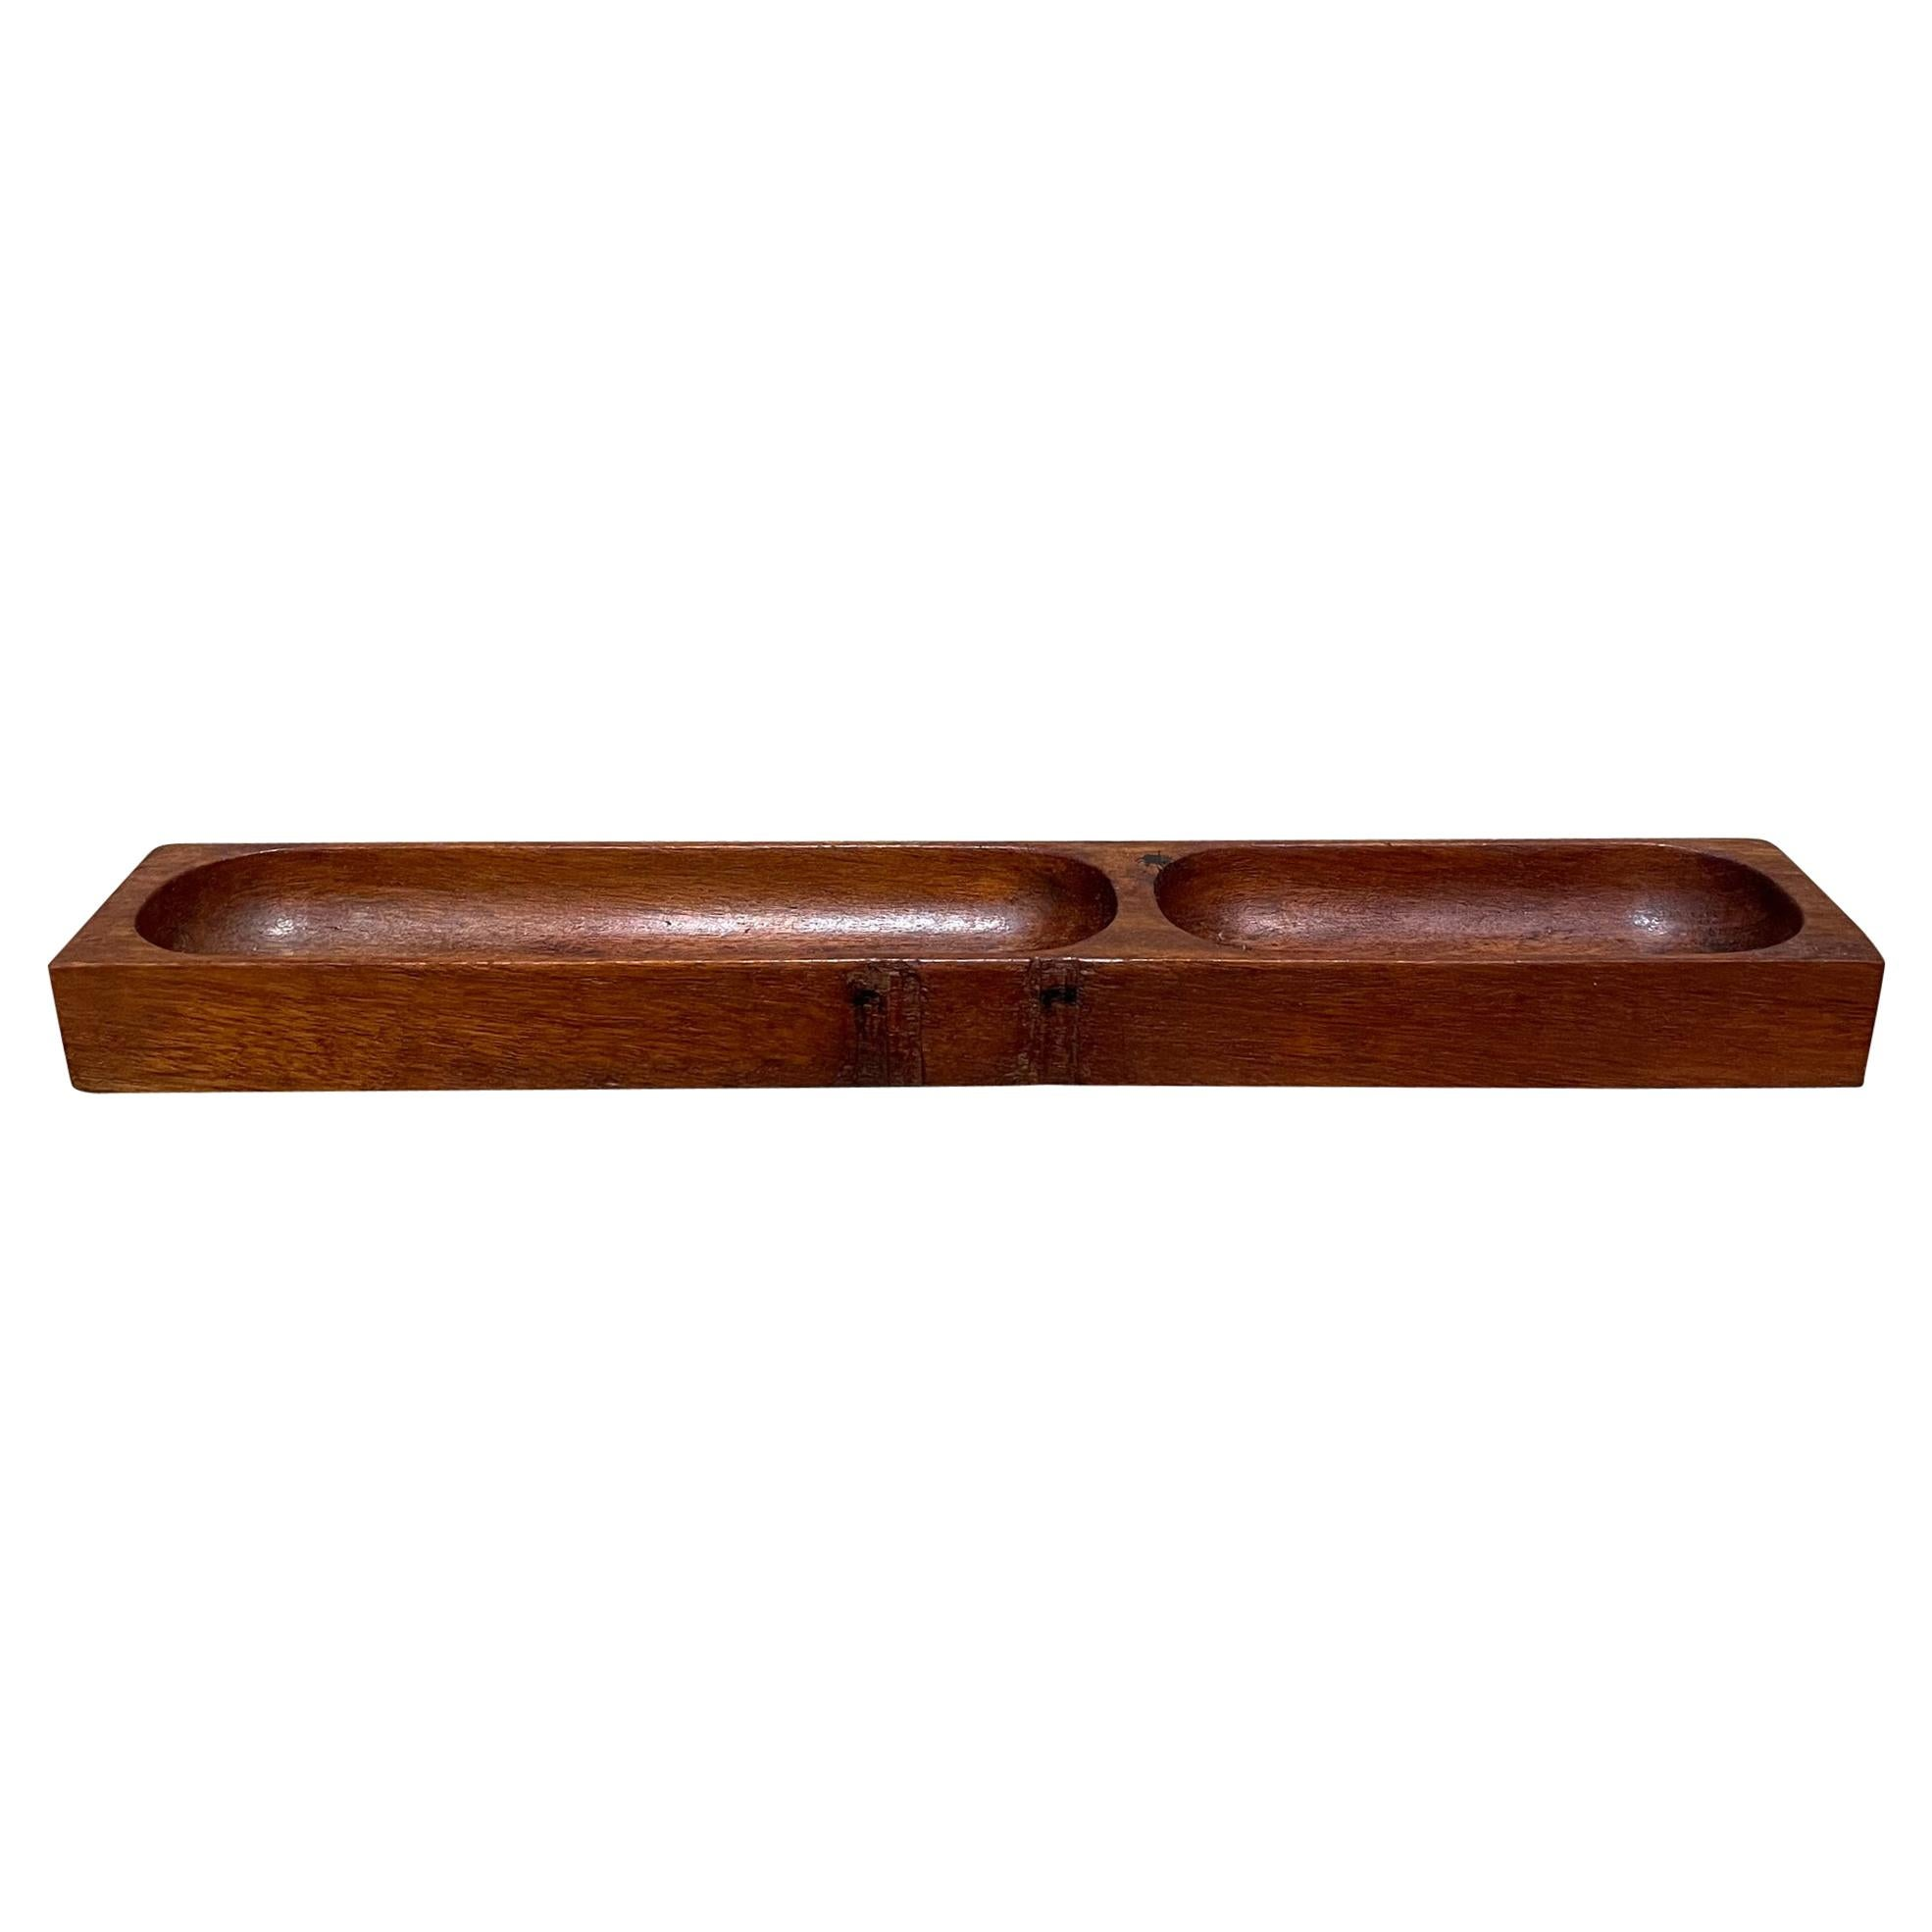 1950s Desk Organizer Accessory Tray in Solid Mahogany Wood Mexico City Modernism